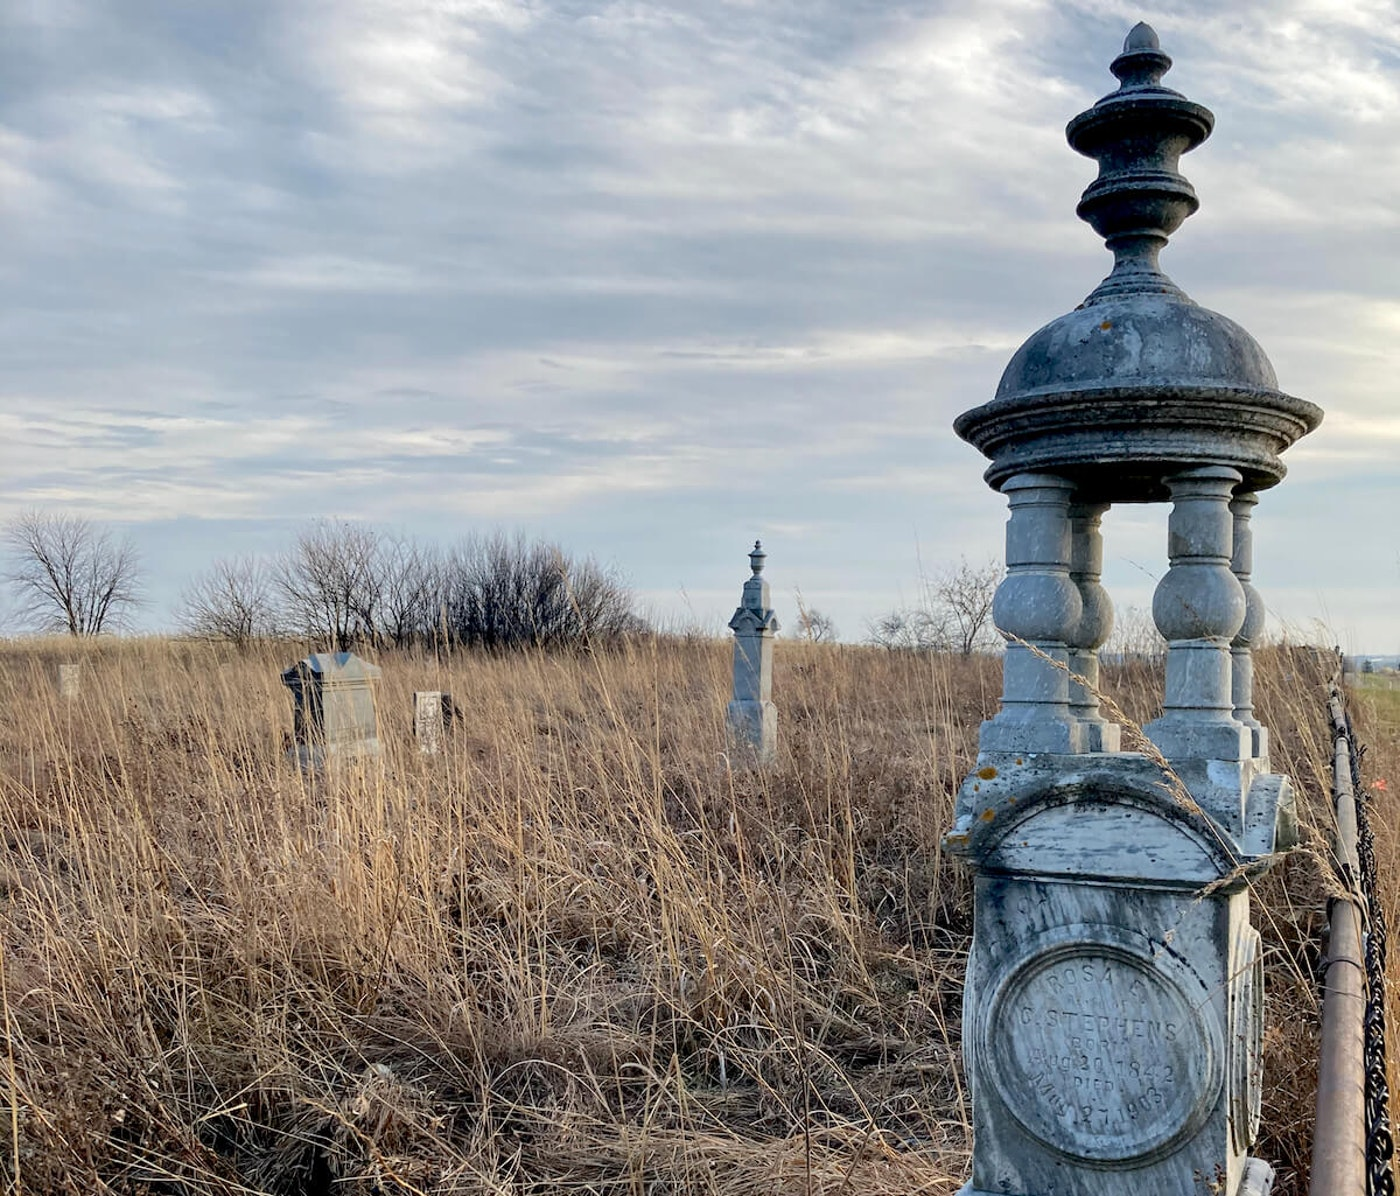 Green's Prairie Cemetery, near Monroe, is the resting spot of veterans of the War of 1812 and the Blackhawk Wars of 1832. (Photo by Susan Lampert Smith)